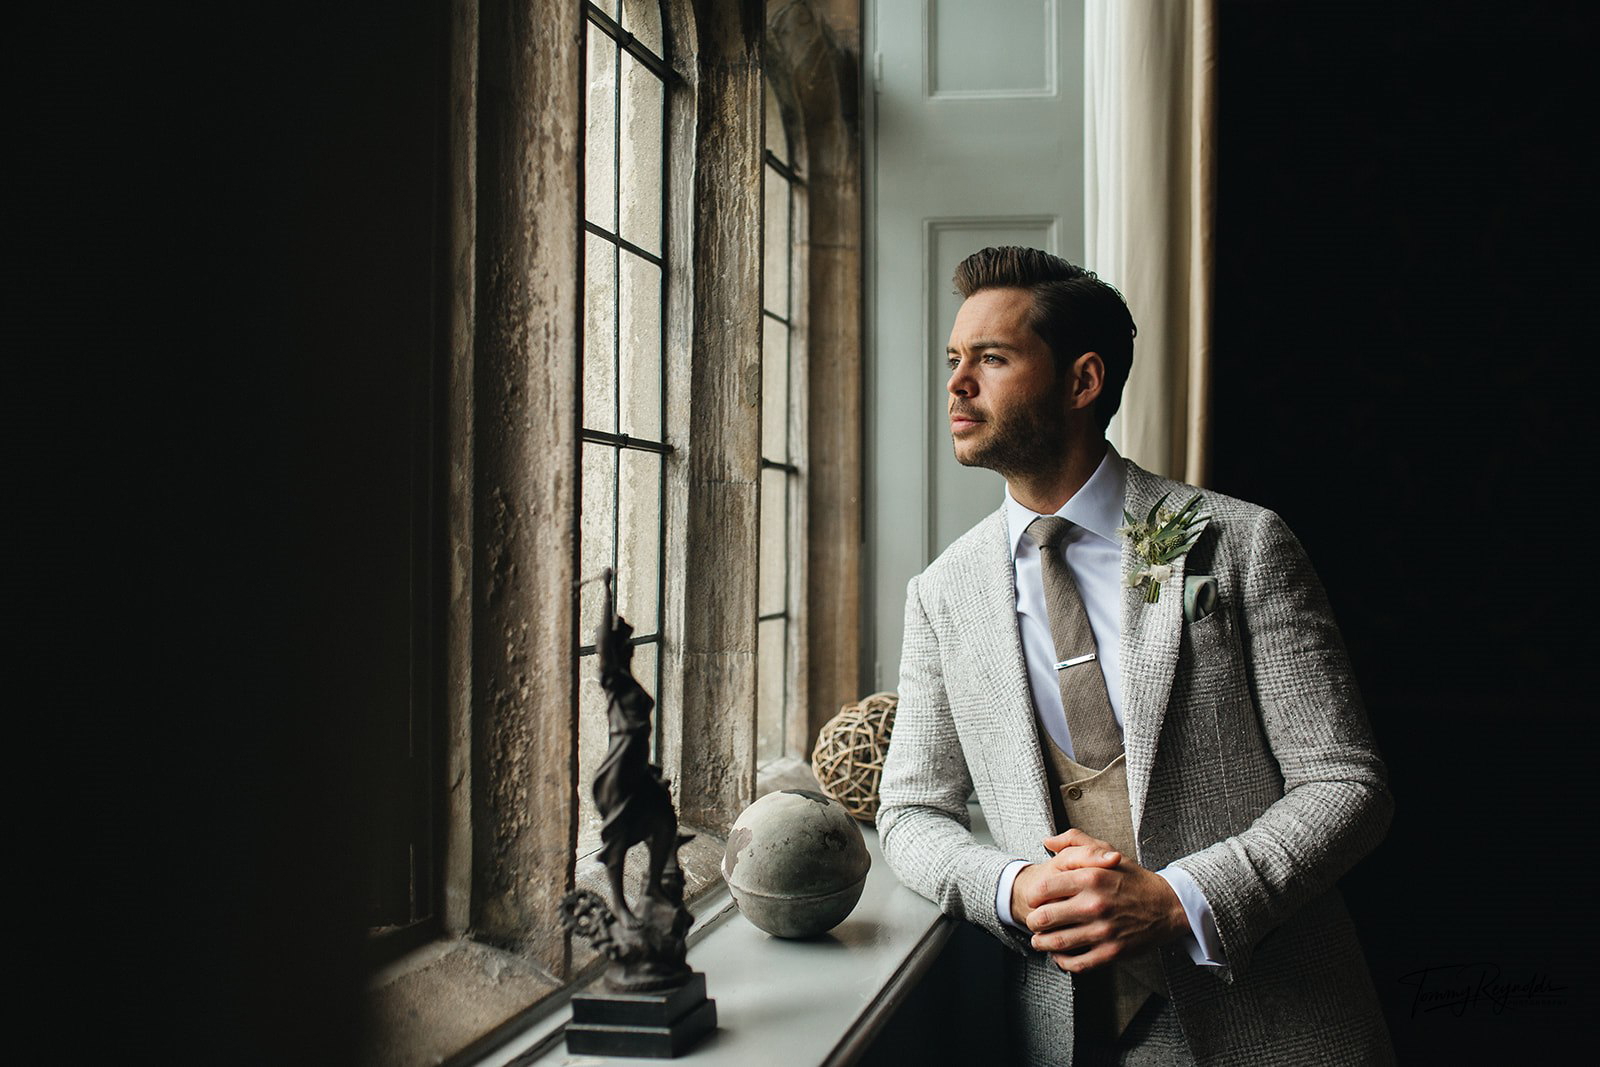 The groom reflecting and looking out of the window at Hengrave Hall